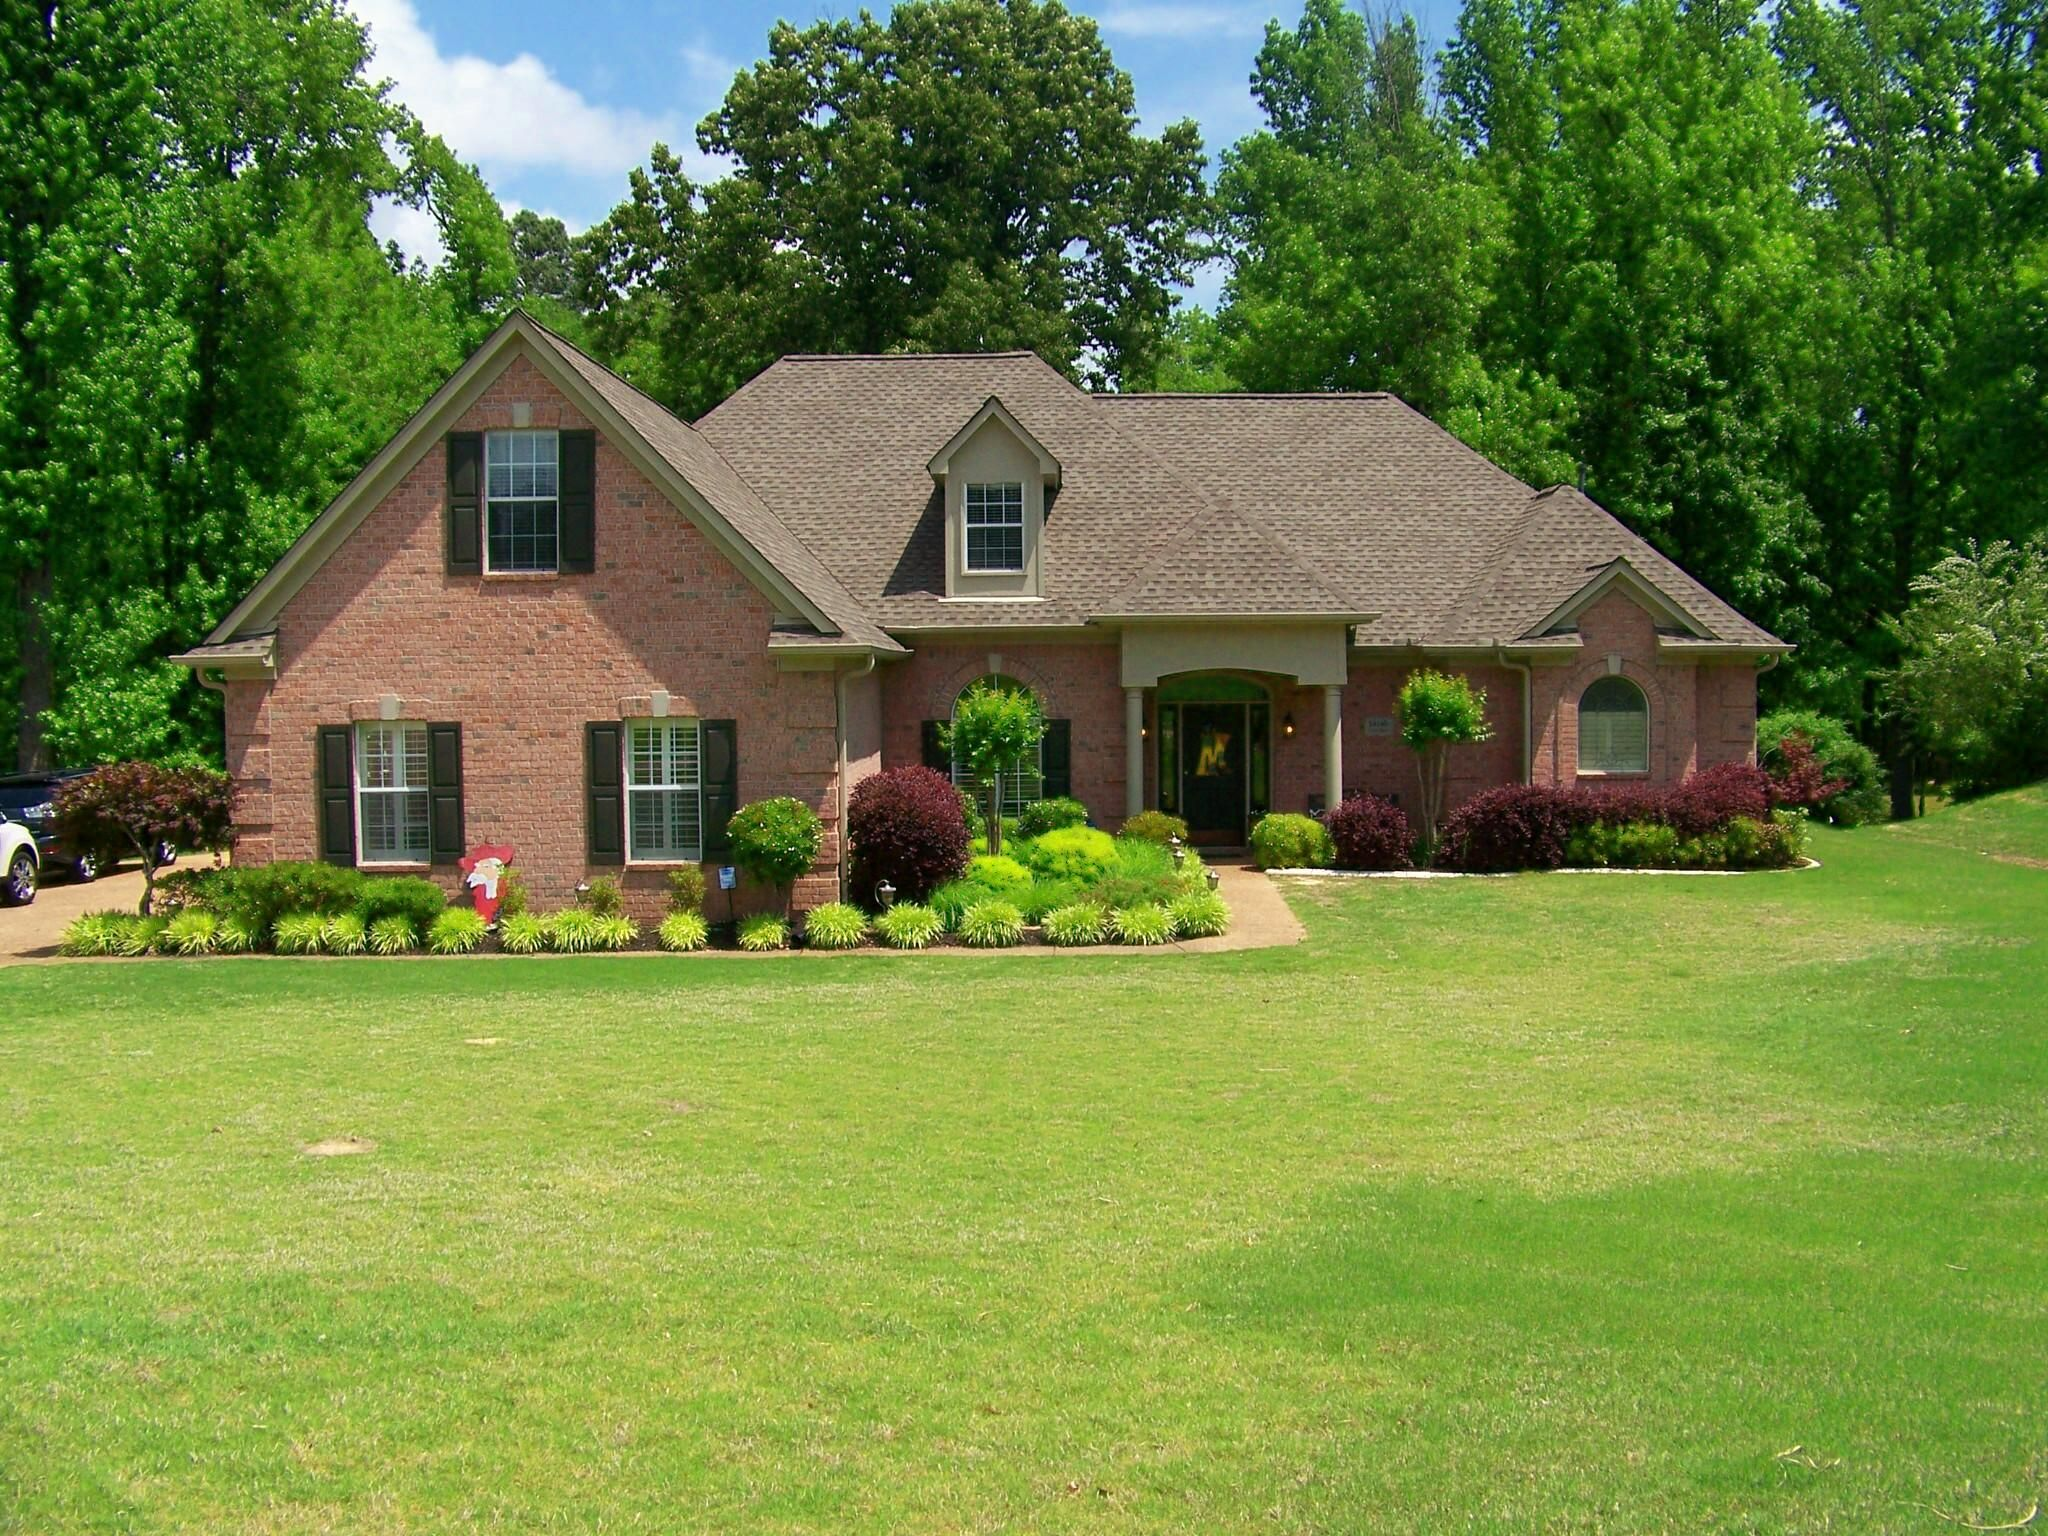 Olive Branch Ms Homes For Sale Estate Homes Foreclosed Homes Sale House